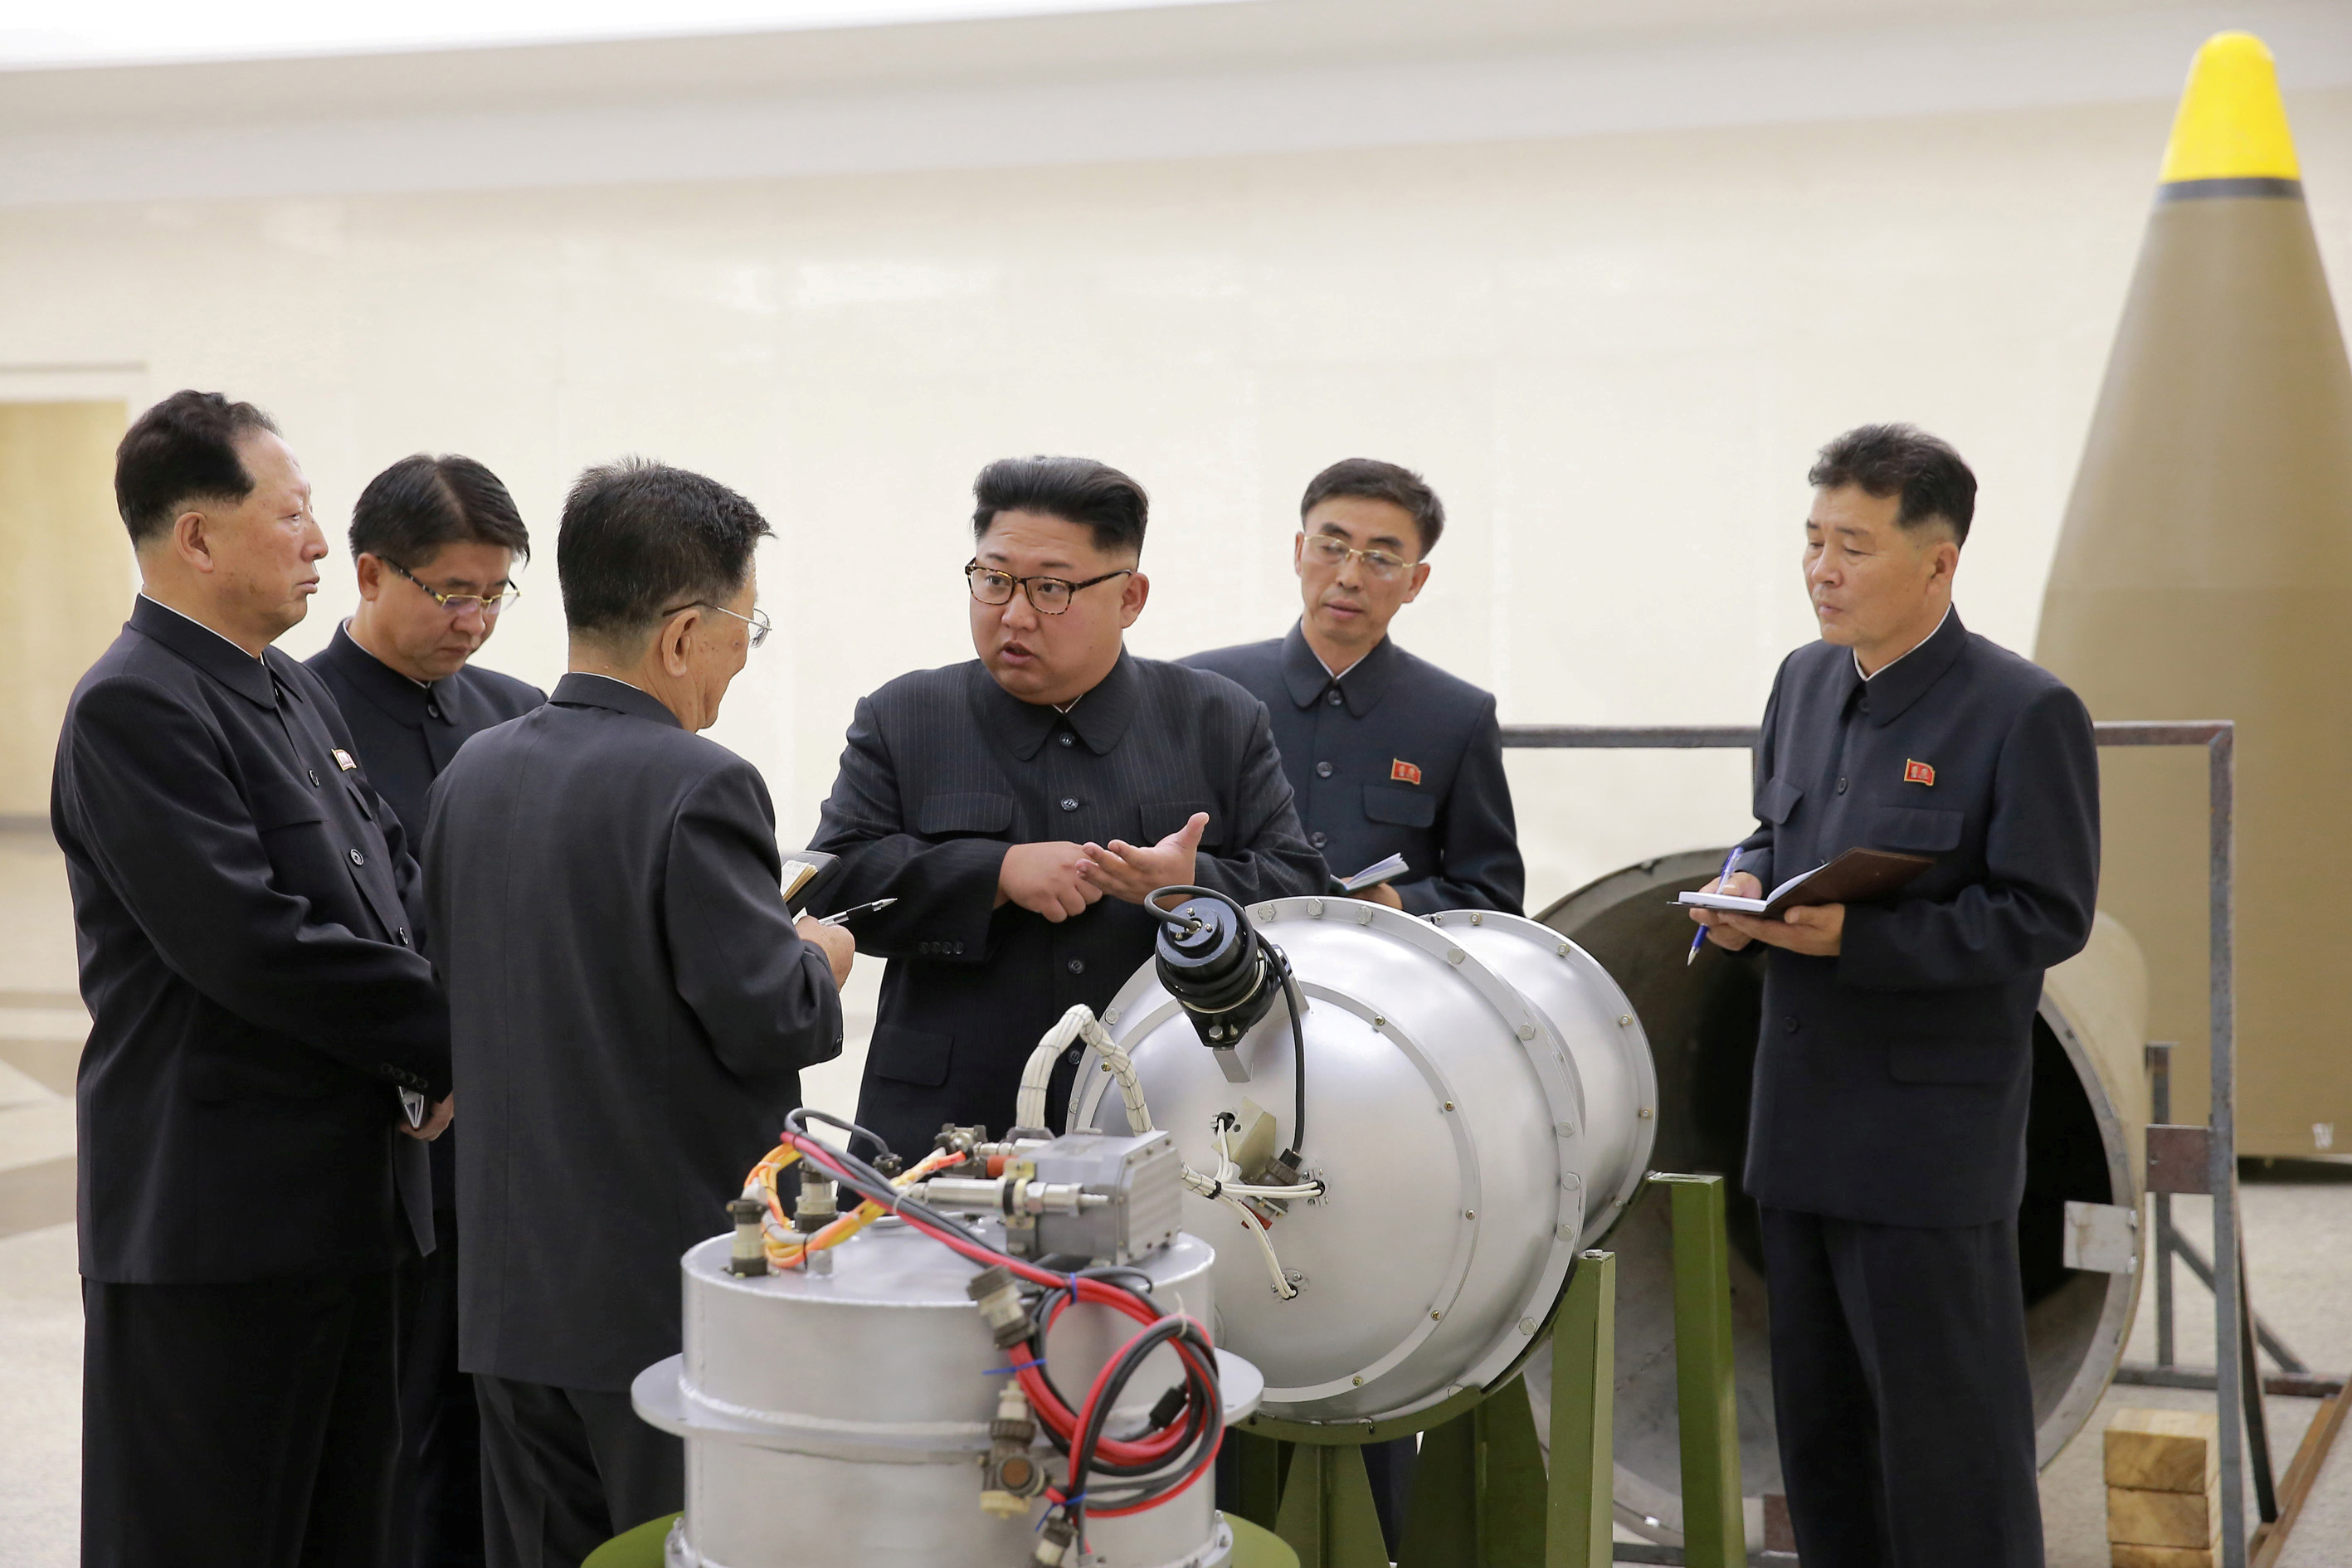 North Korean leader Kim Jong Un provides guidance with Ri Hong Sop (3rd L) and Hong Sung Mu (L) on a nuclear weapons program in this undated photo released by North Korea's Korean Central News Agency (KCNA) in Pyongyang September 3, 2017. KCNA via REUTERS ATTENTION EDITORS - THIS PICTURE WAS PROVIDED BY A THIRD PARTY. REUTERS IS UNABLE TO INDEPENDENTLY VERIFY THE AUTHENTICITY, CONTENT, LOCATION OR DATE OF THIS IMAGE. NOT FOR SALE FOR MARKETING OR ADVERTISING CAMPAIGNS. NO THIRD PARTY SALES. NOT FOR USE BY REUTERS THIRD PARTY DISTRIBUTORS. SOUTH KOREA OUT. NO COMMERCIAL OR EDITORIAL SALES IN SOUTH KOREA. THIS PICTURE IS DISTRIBUTED EXACTLY AS RECEIVED BY REUTERS, AS A SERVICE TO CLIENTS.